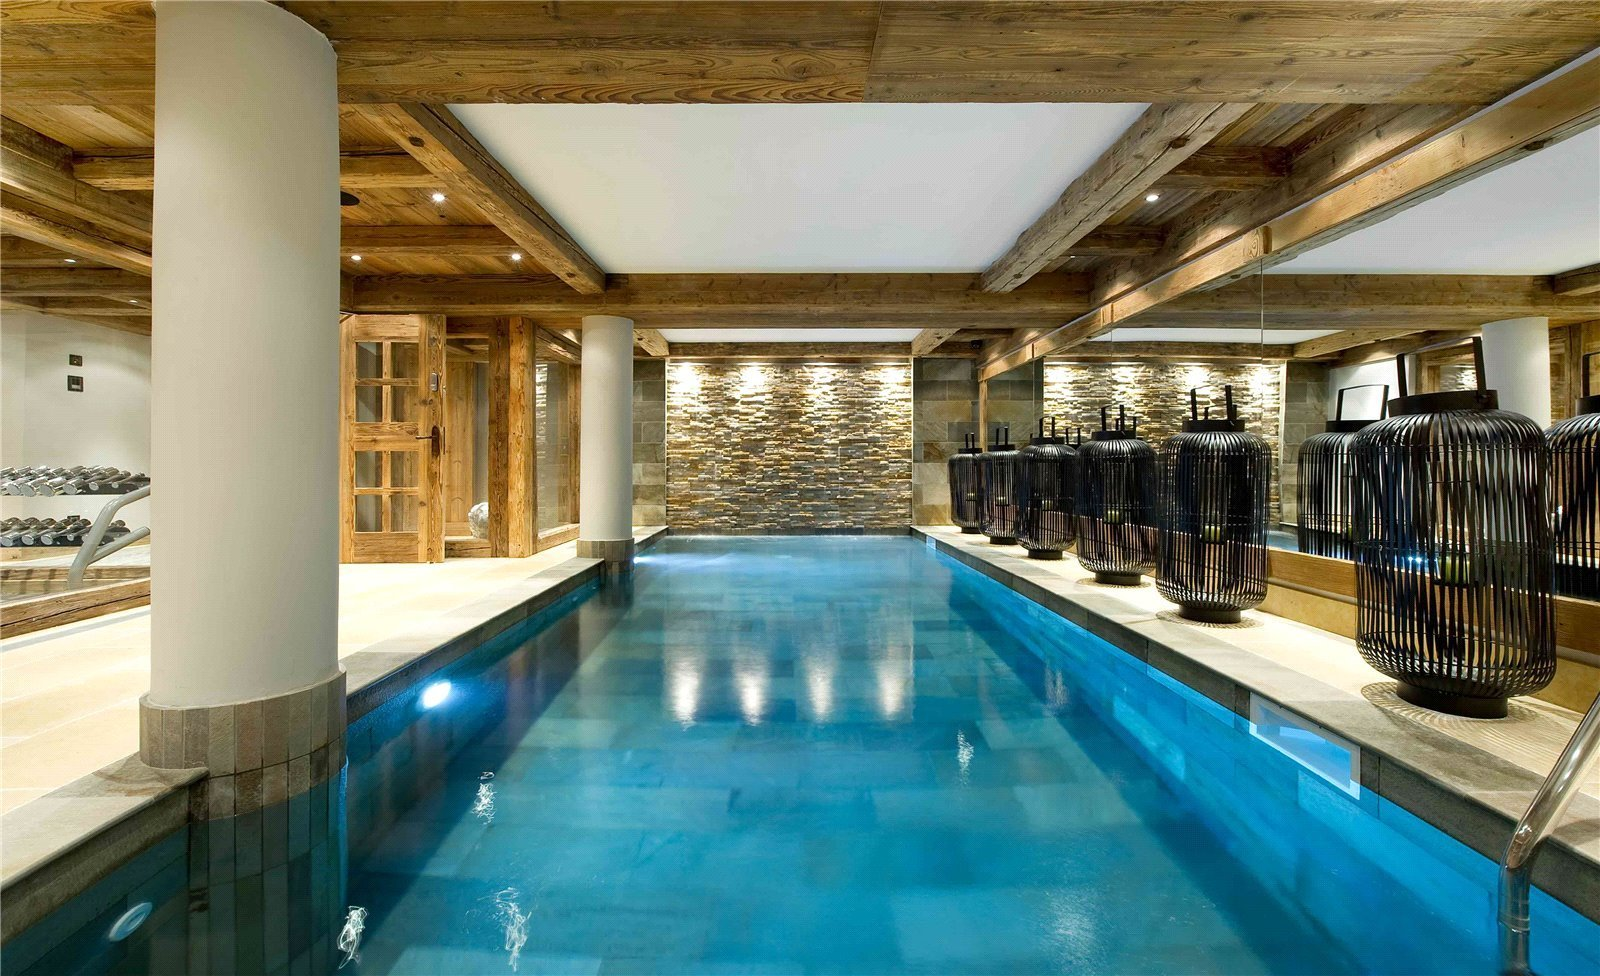 Rental Villa Courchevel Le Petit Château provides the perfect base from which to explore Courchevel 1850, the legendary skiers' paradise.